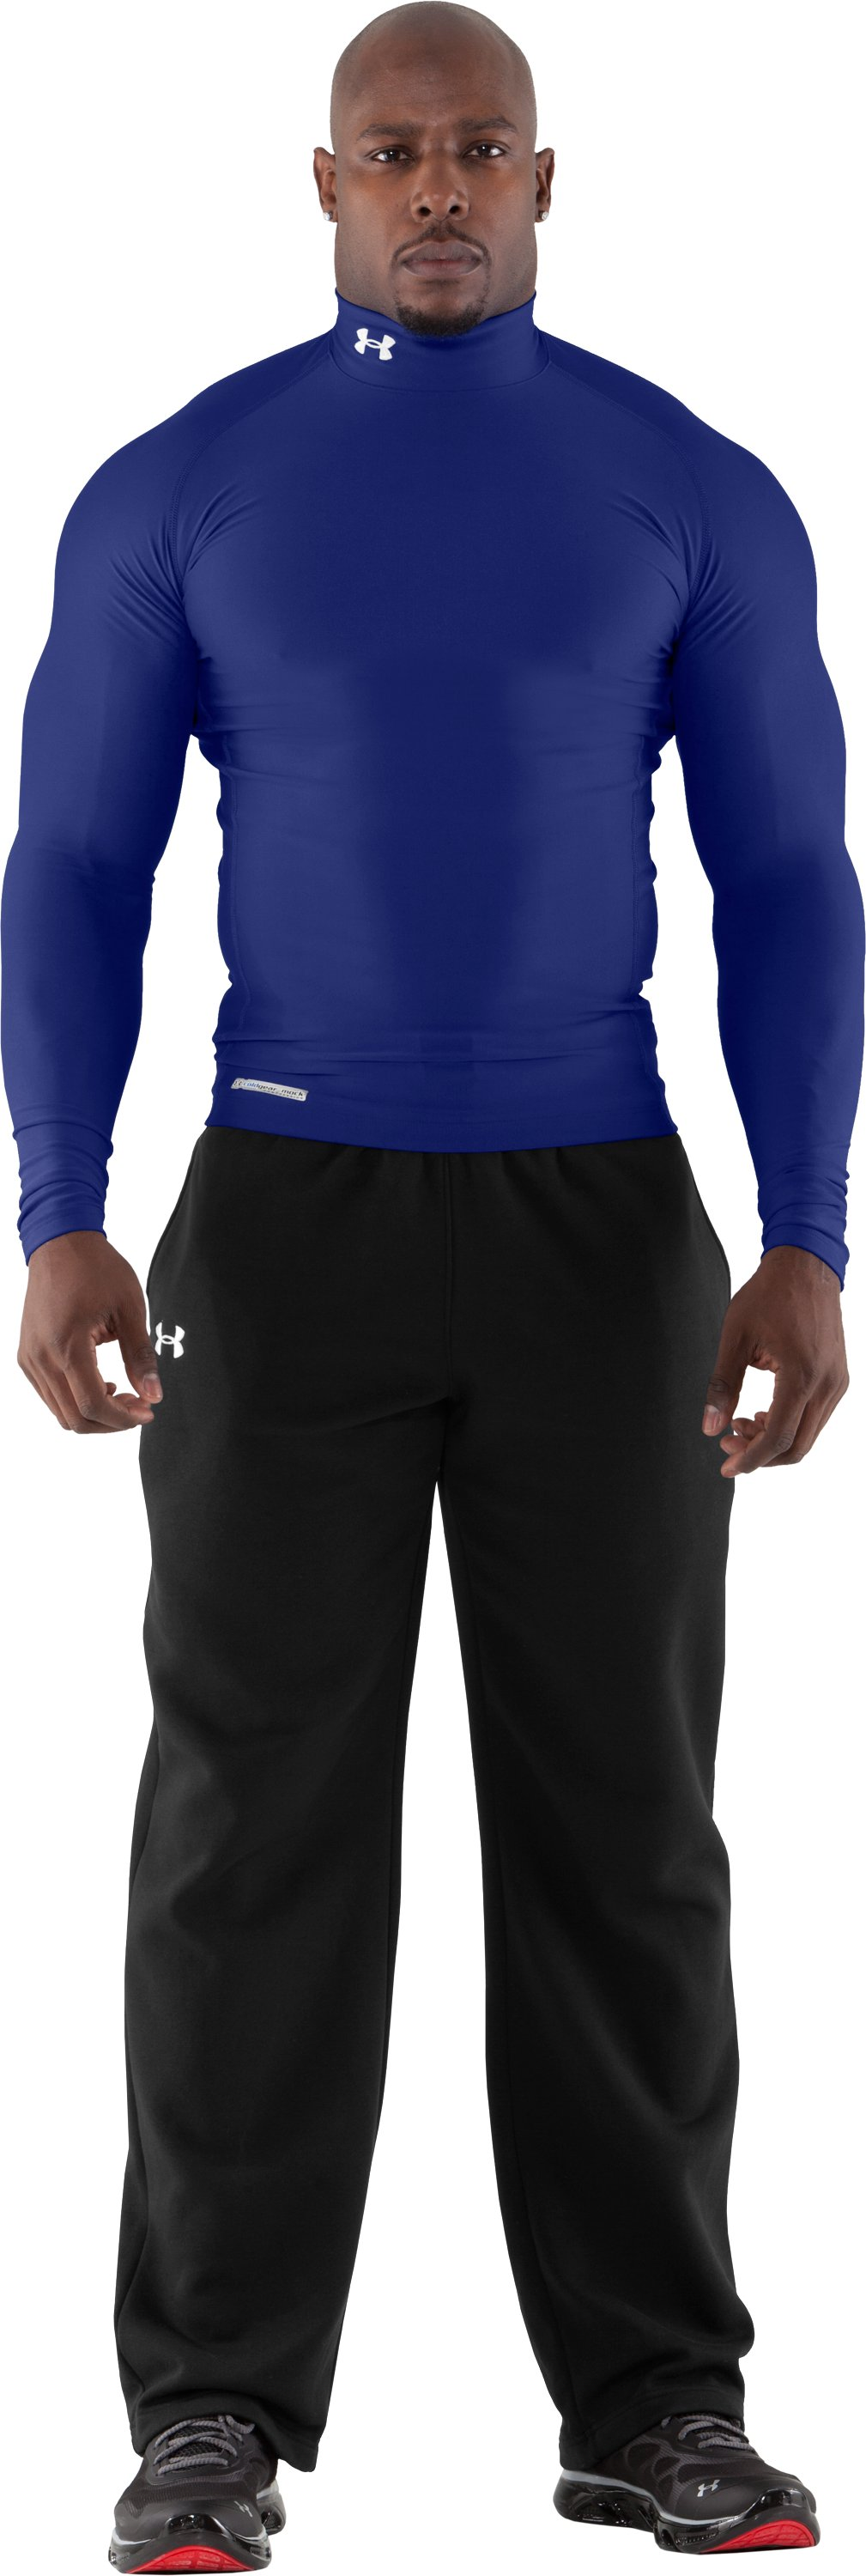 Men's ColdGear® Evo Long Sleeve Compression Mock, Royal, Front